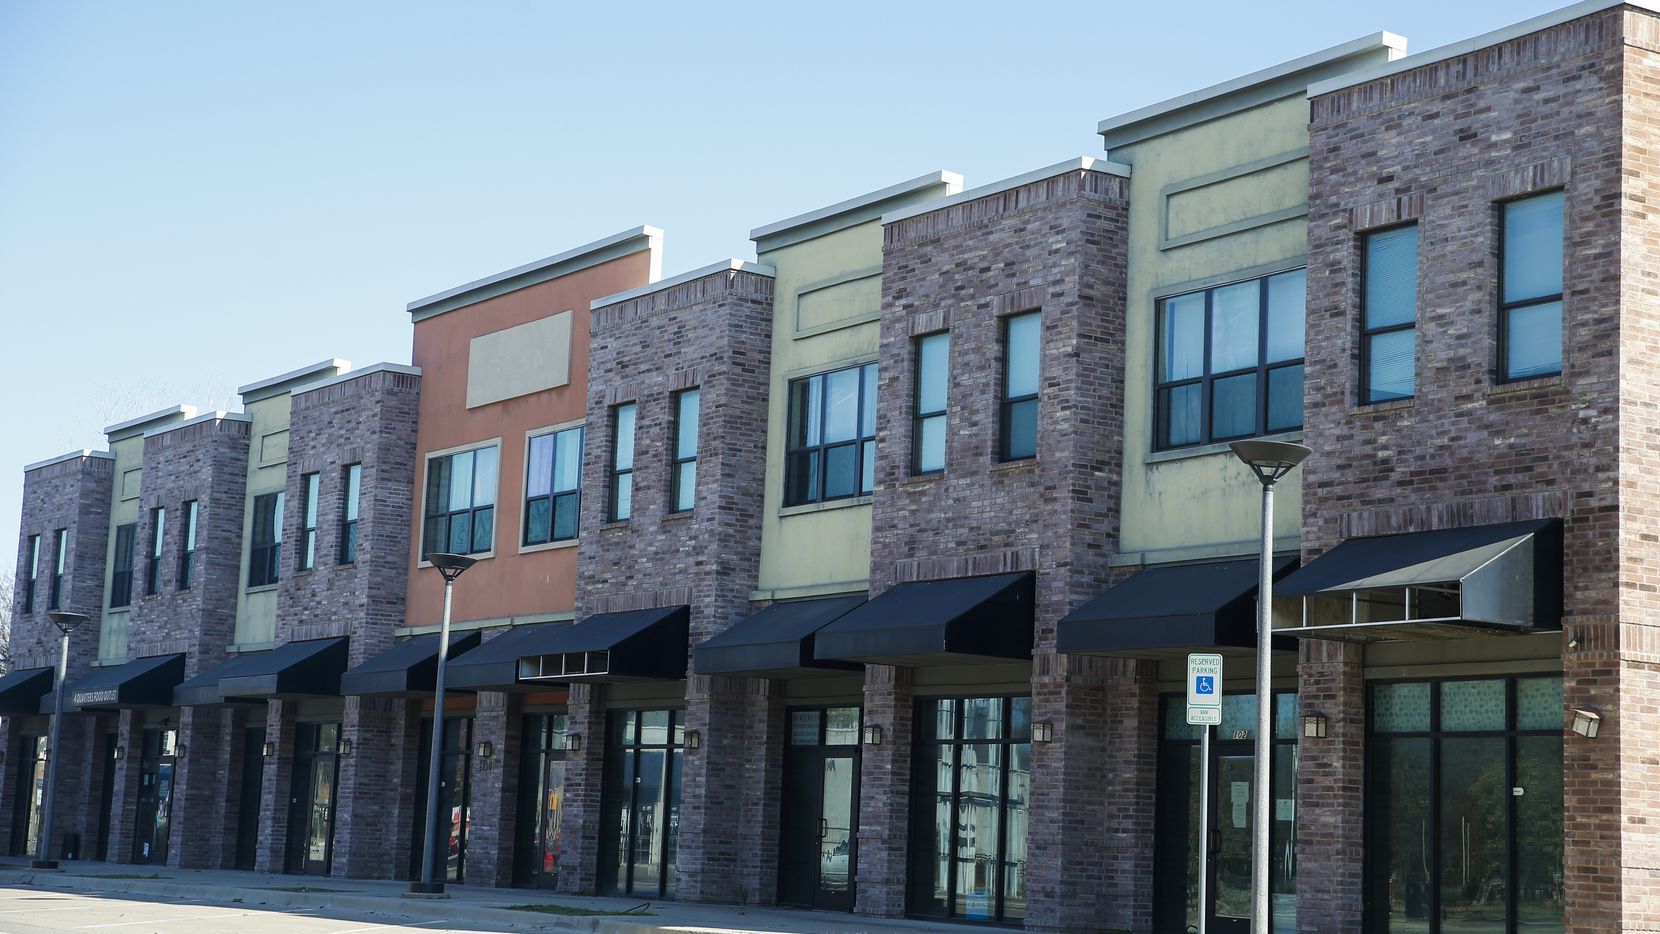 Seven people live in the upstairs apartments at 5210 Bexar St. But most of the downstairs storefronts, which taxpayers helped fund, are barren.